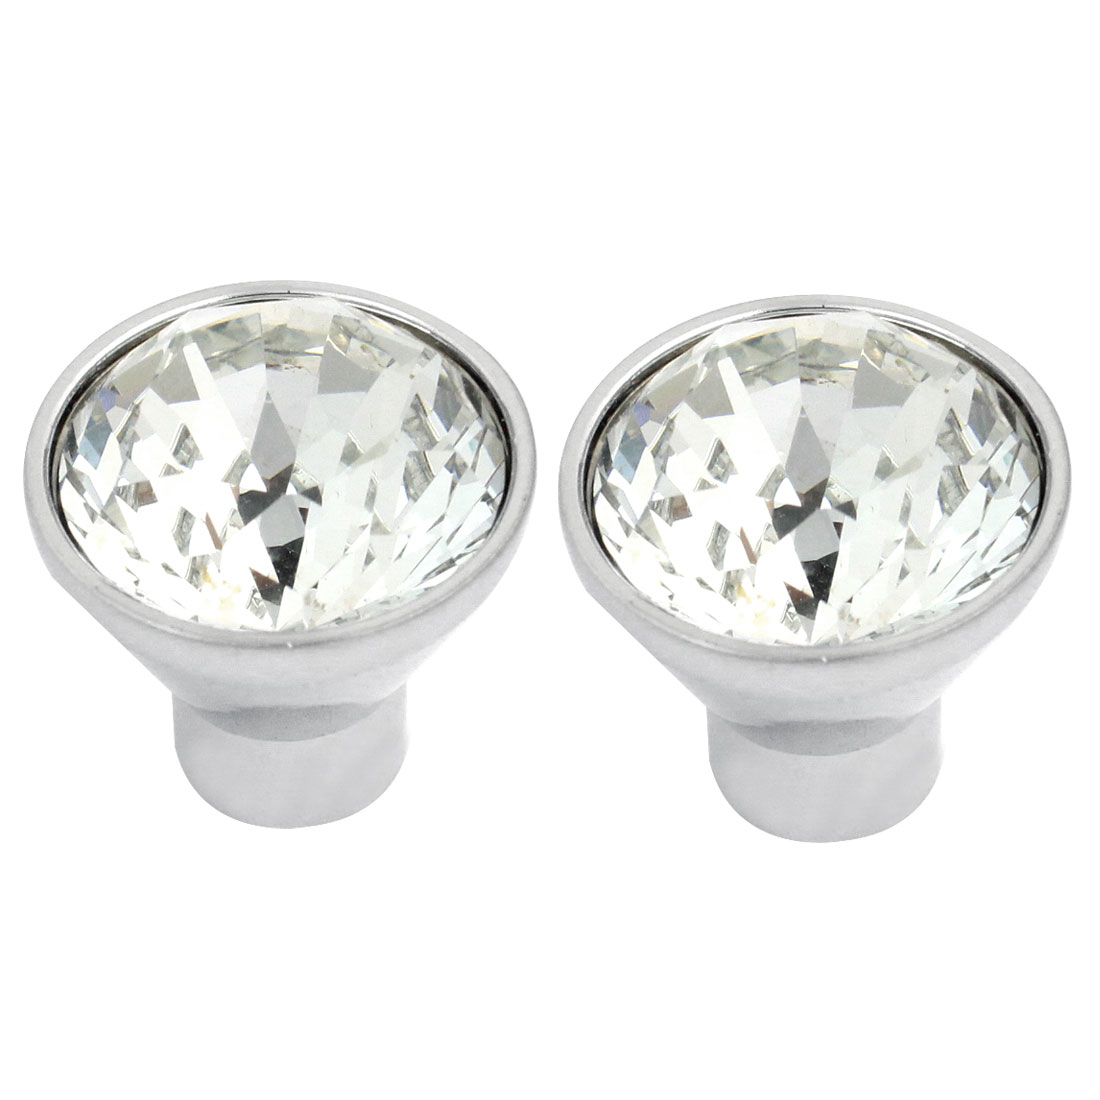 2pcs 25mm Sparkle Plastic Crystal Cabinet Drawer Door Round Knob Pull Handle